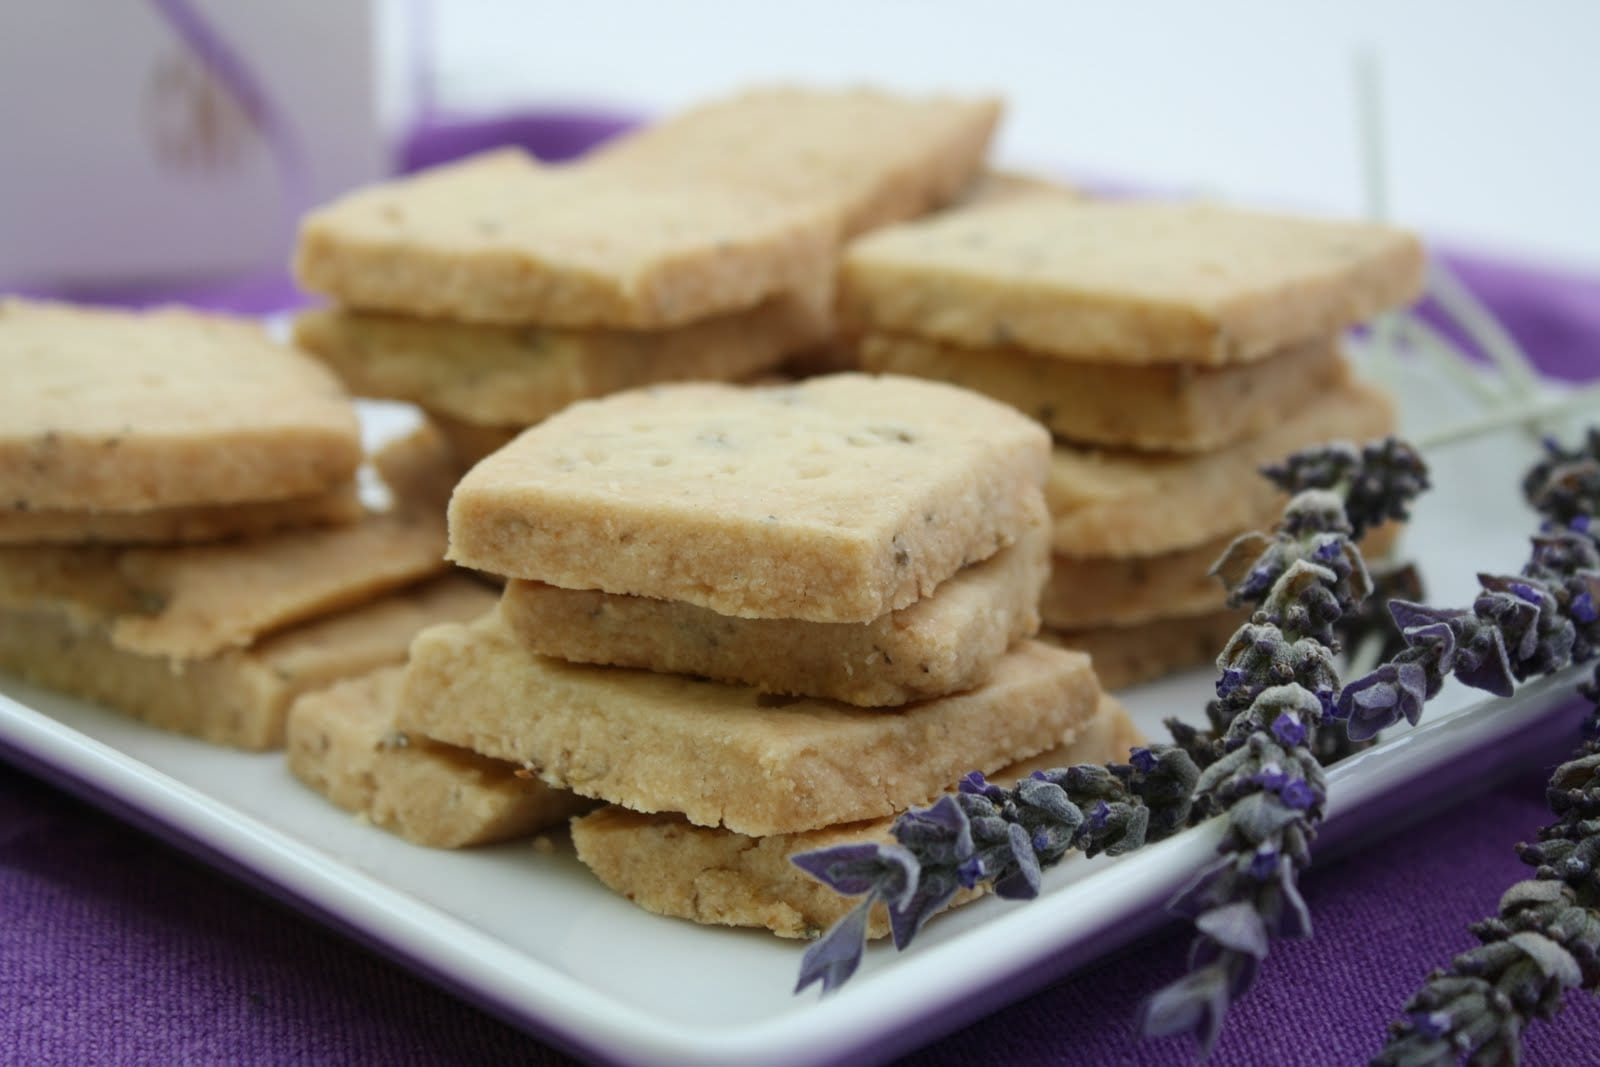 Lavender shortbread cookies have an aroma so sensual, you might fall head over heels in love with them! Get the recipe at What a Girl Eats